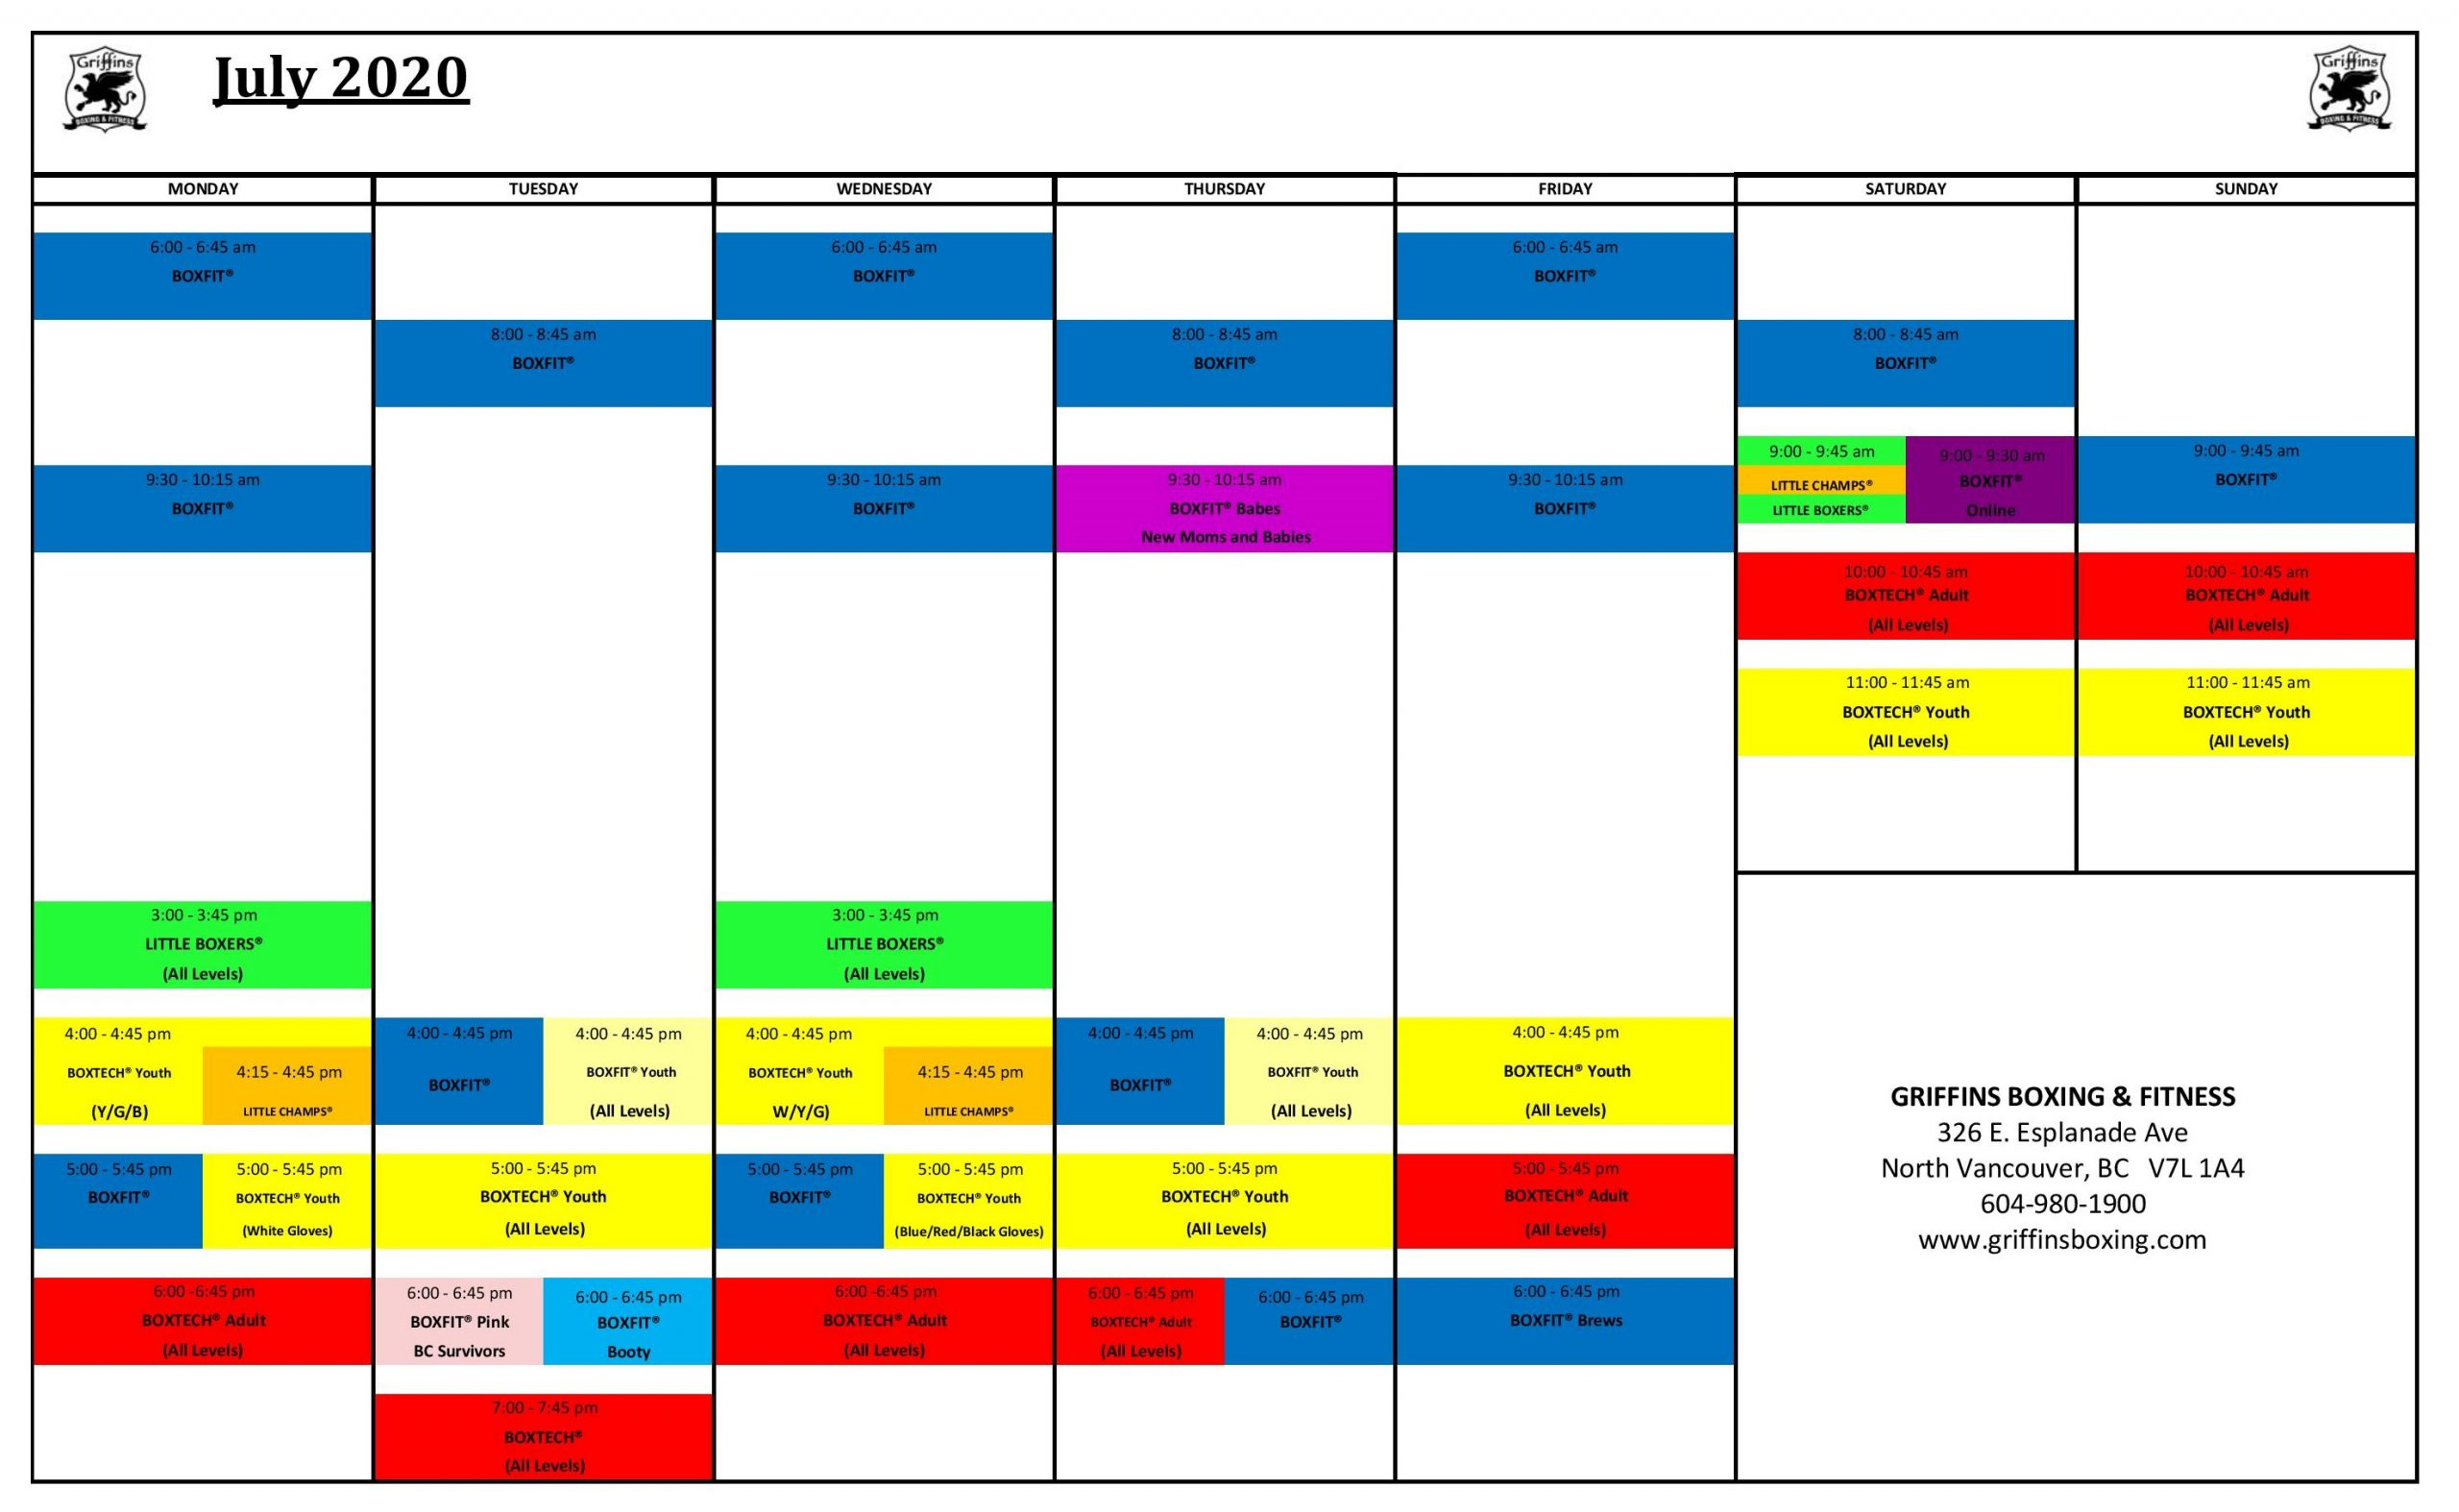 July'20 Schedule At Fitness Gym in Vancouver BC